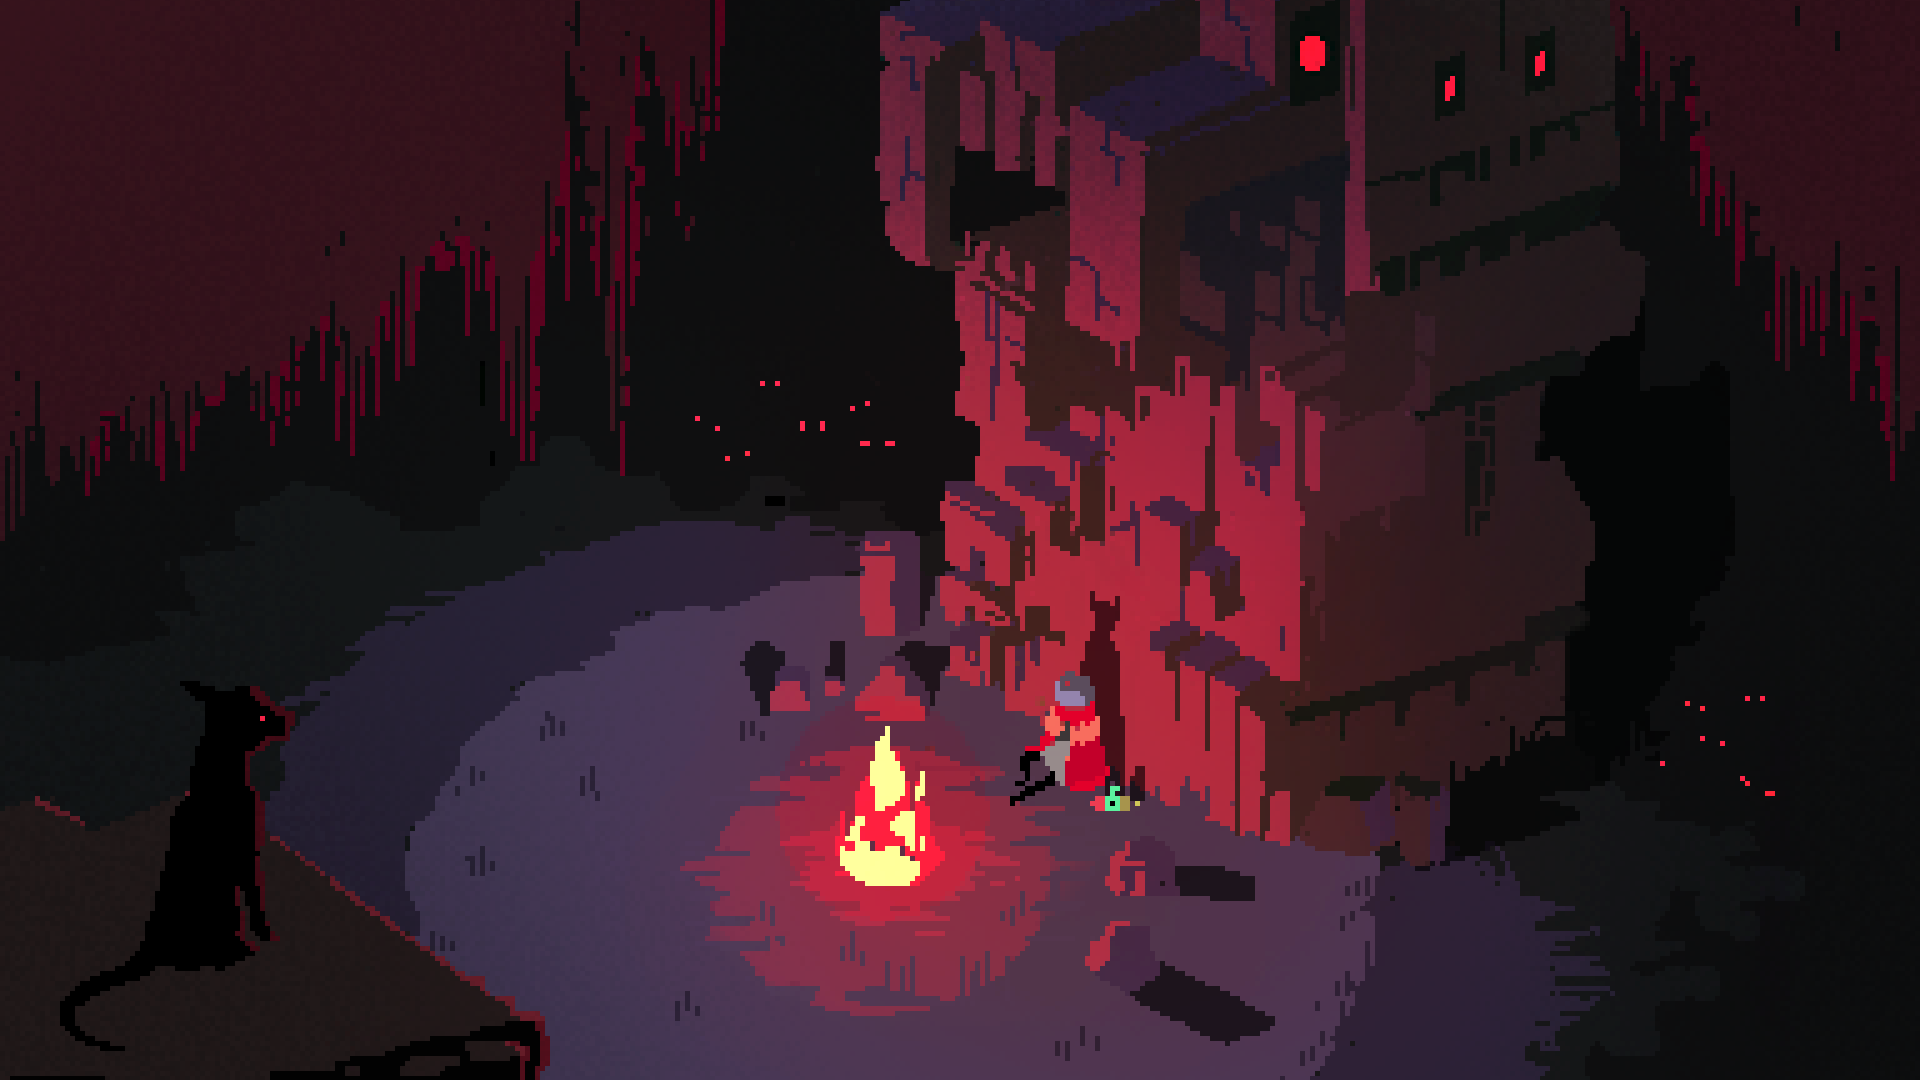 Hyper Light Drifter Video Game Desktop Wallpaper 61522 1920x1080px 1920x1080